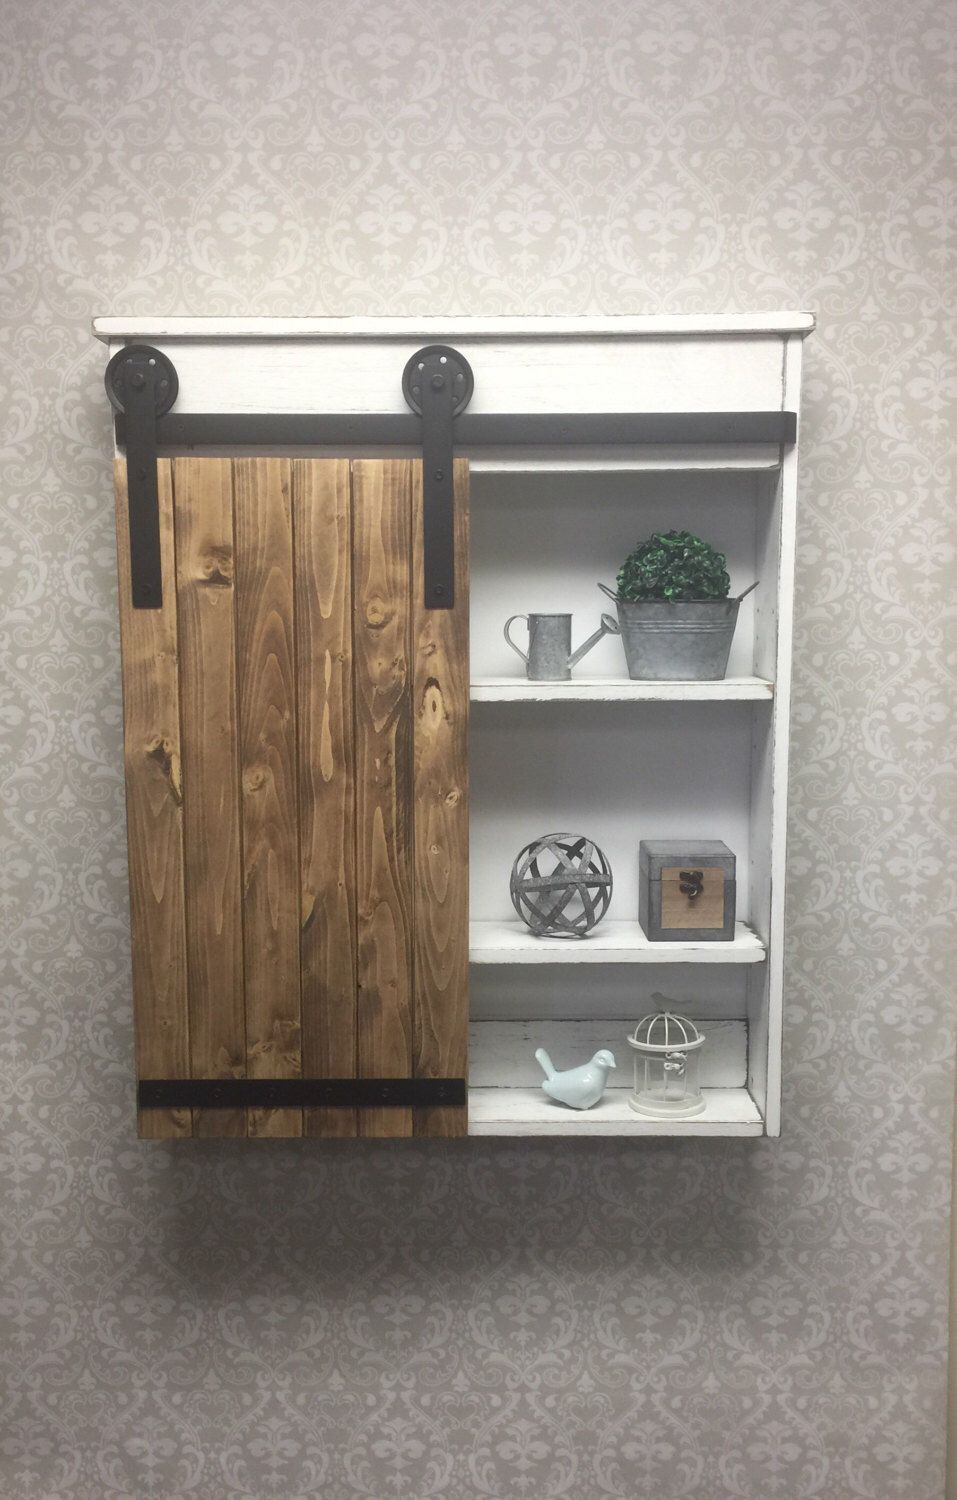 Sliding Barn Door Cabinet Sliding Barn Door Rustic Barn Door Cabinet Barn Door Sliding Door